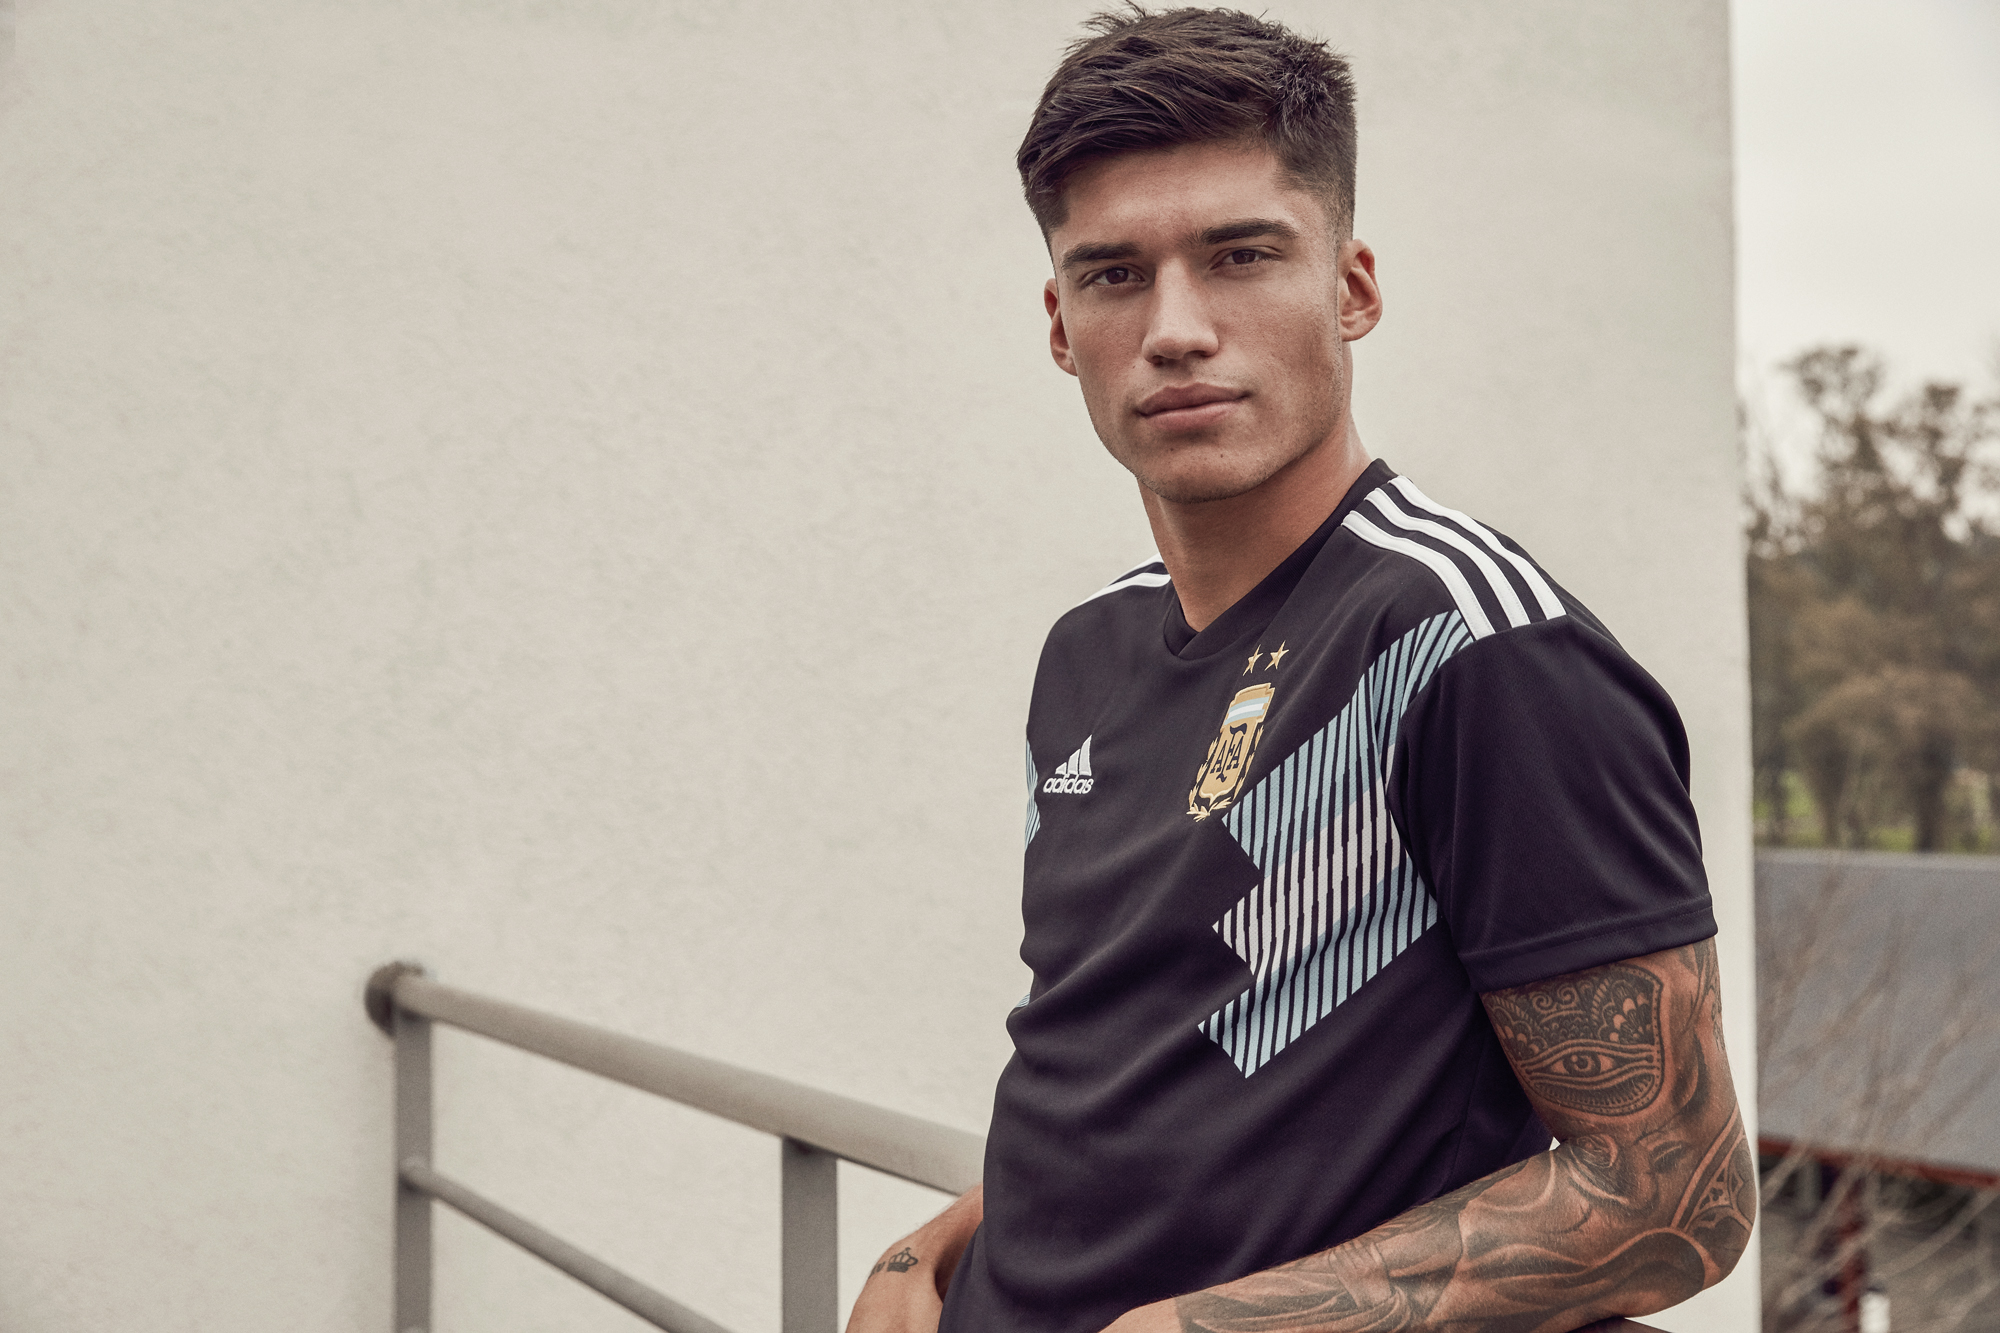 d928179f47b The 2018 away shirt is a re-working of the 1991 home jersey, featuring bold  graphics and a sign-off on the collar which celebrates important moments of  the ...